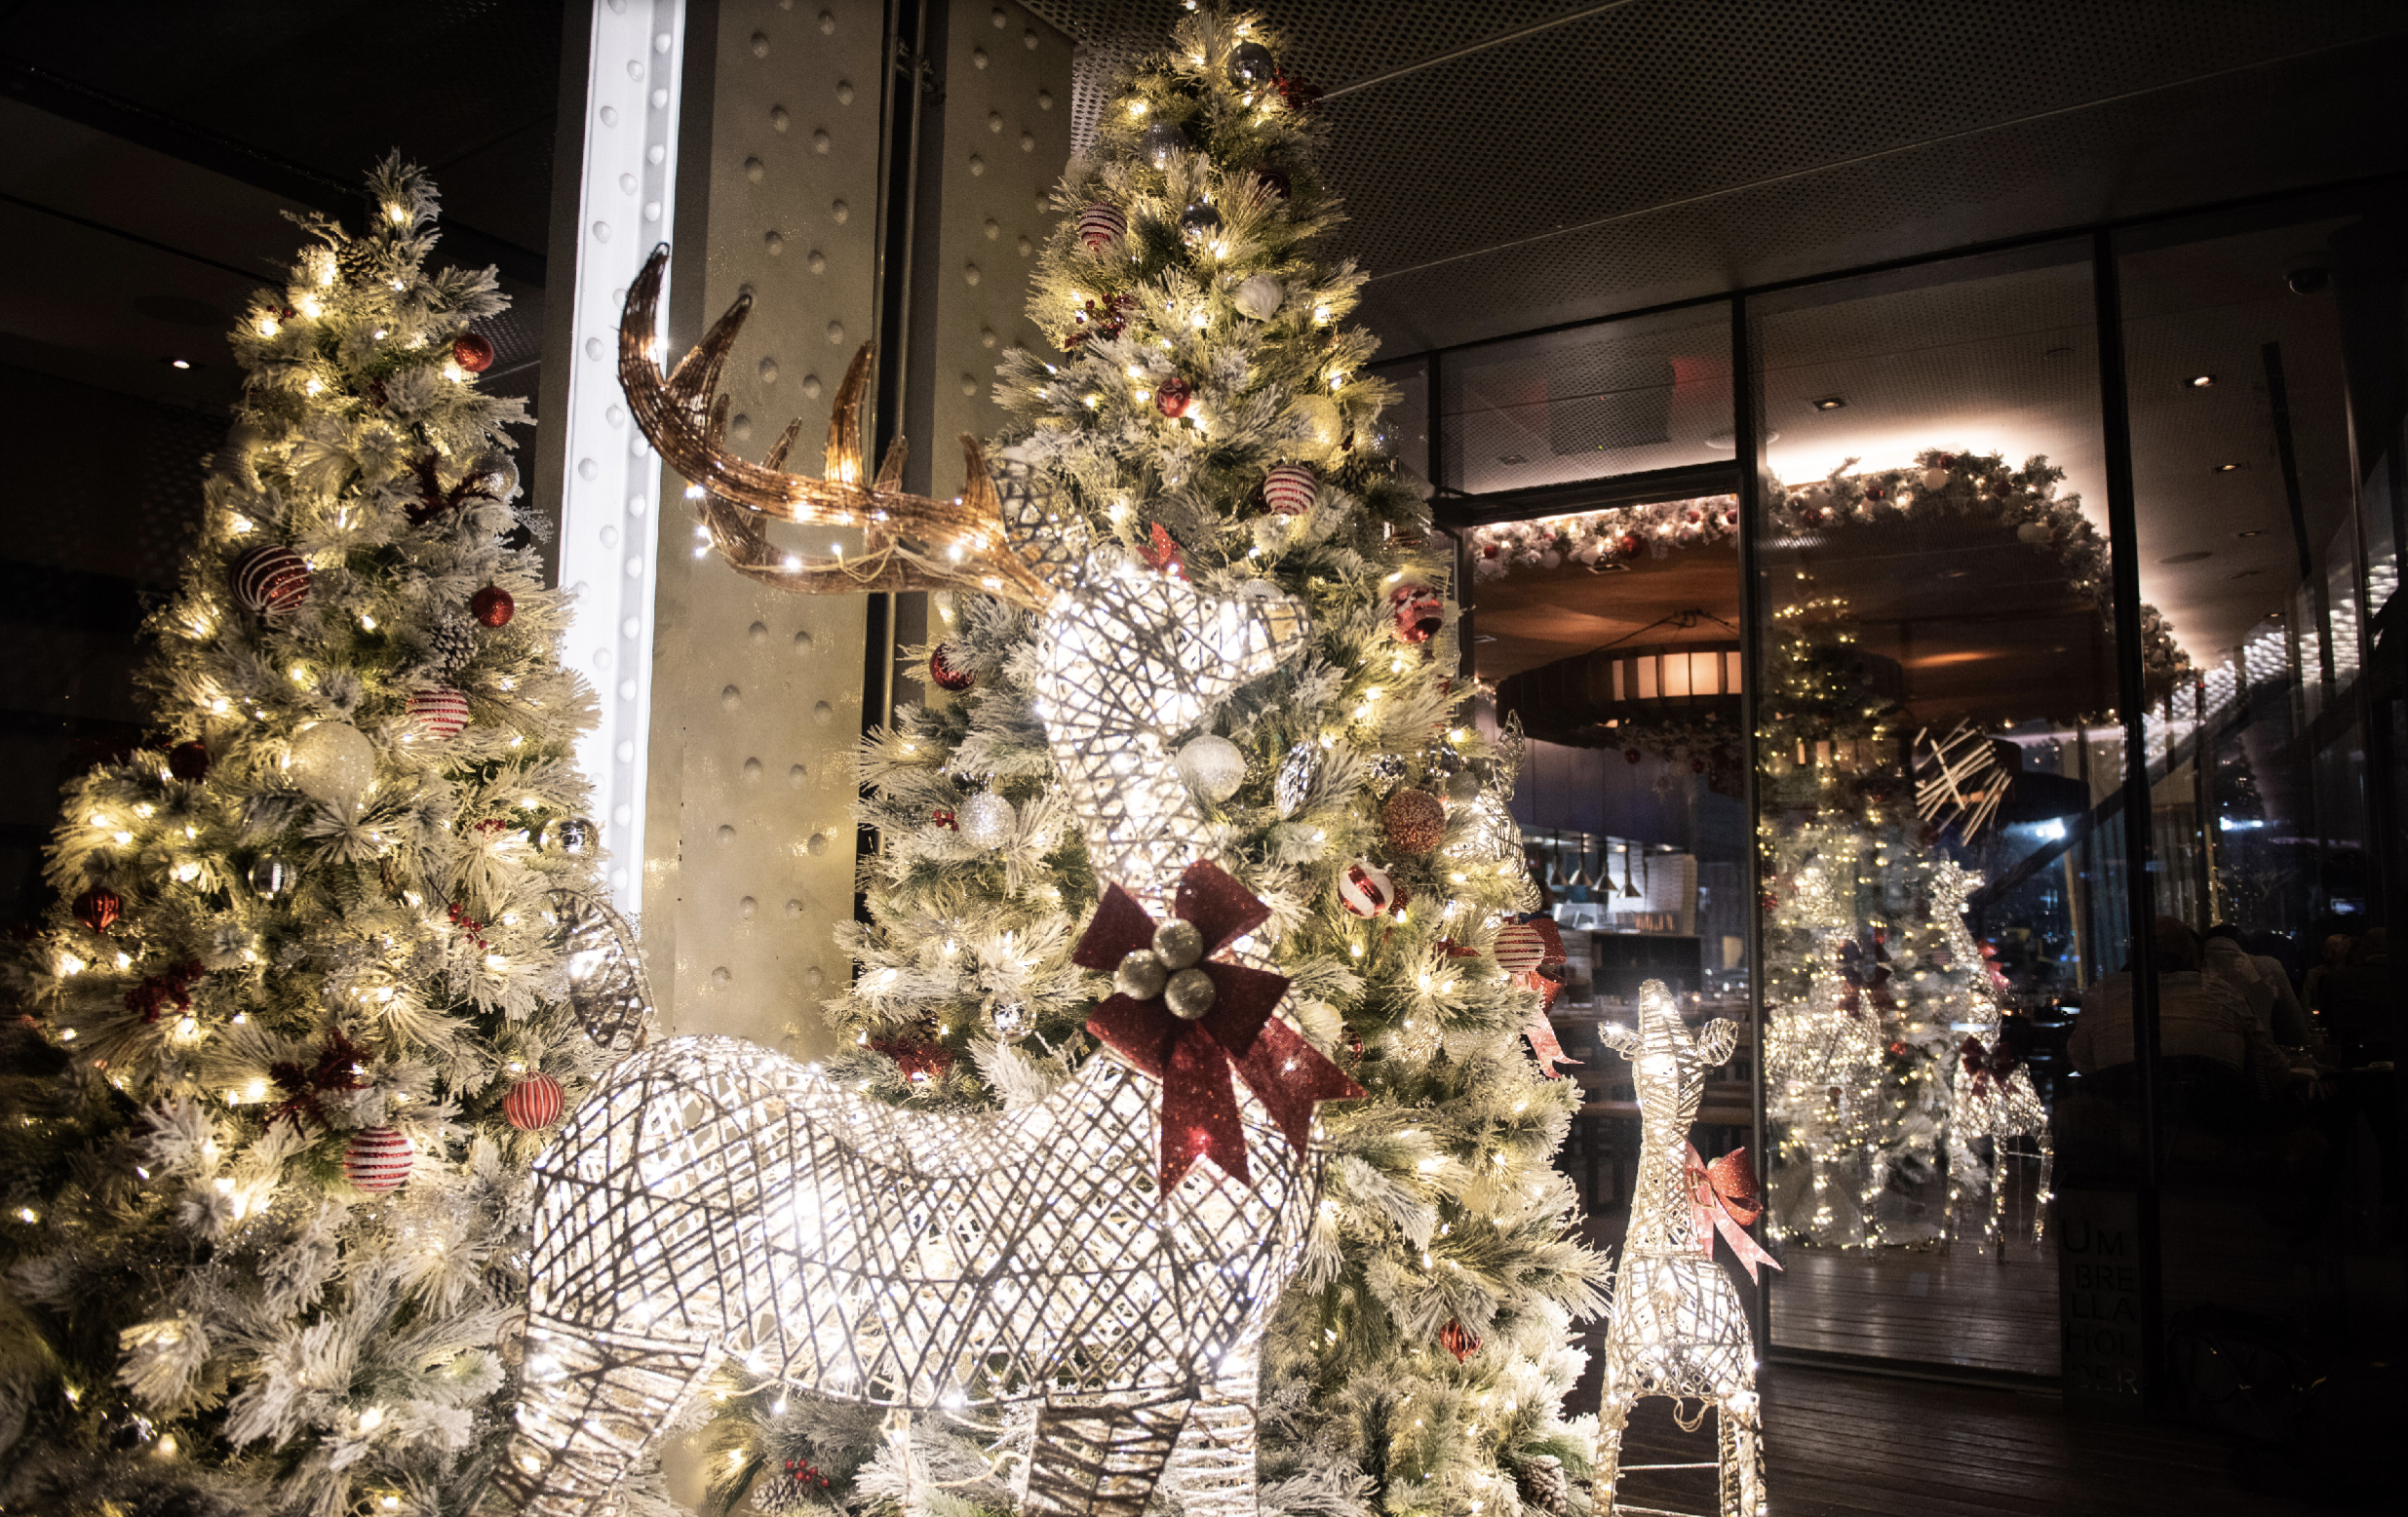 18 Nyc Restaurants With Holiday Decorations Eater Ny